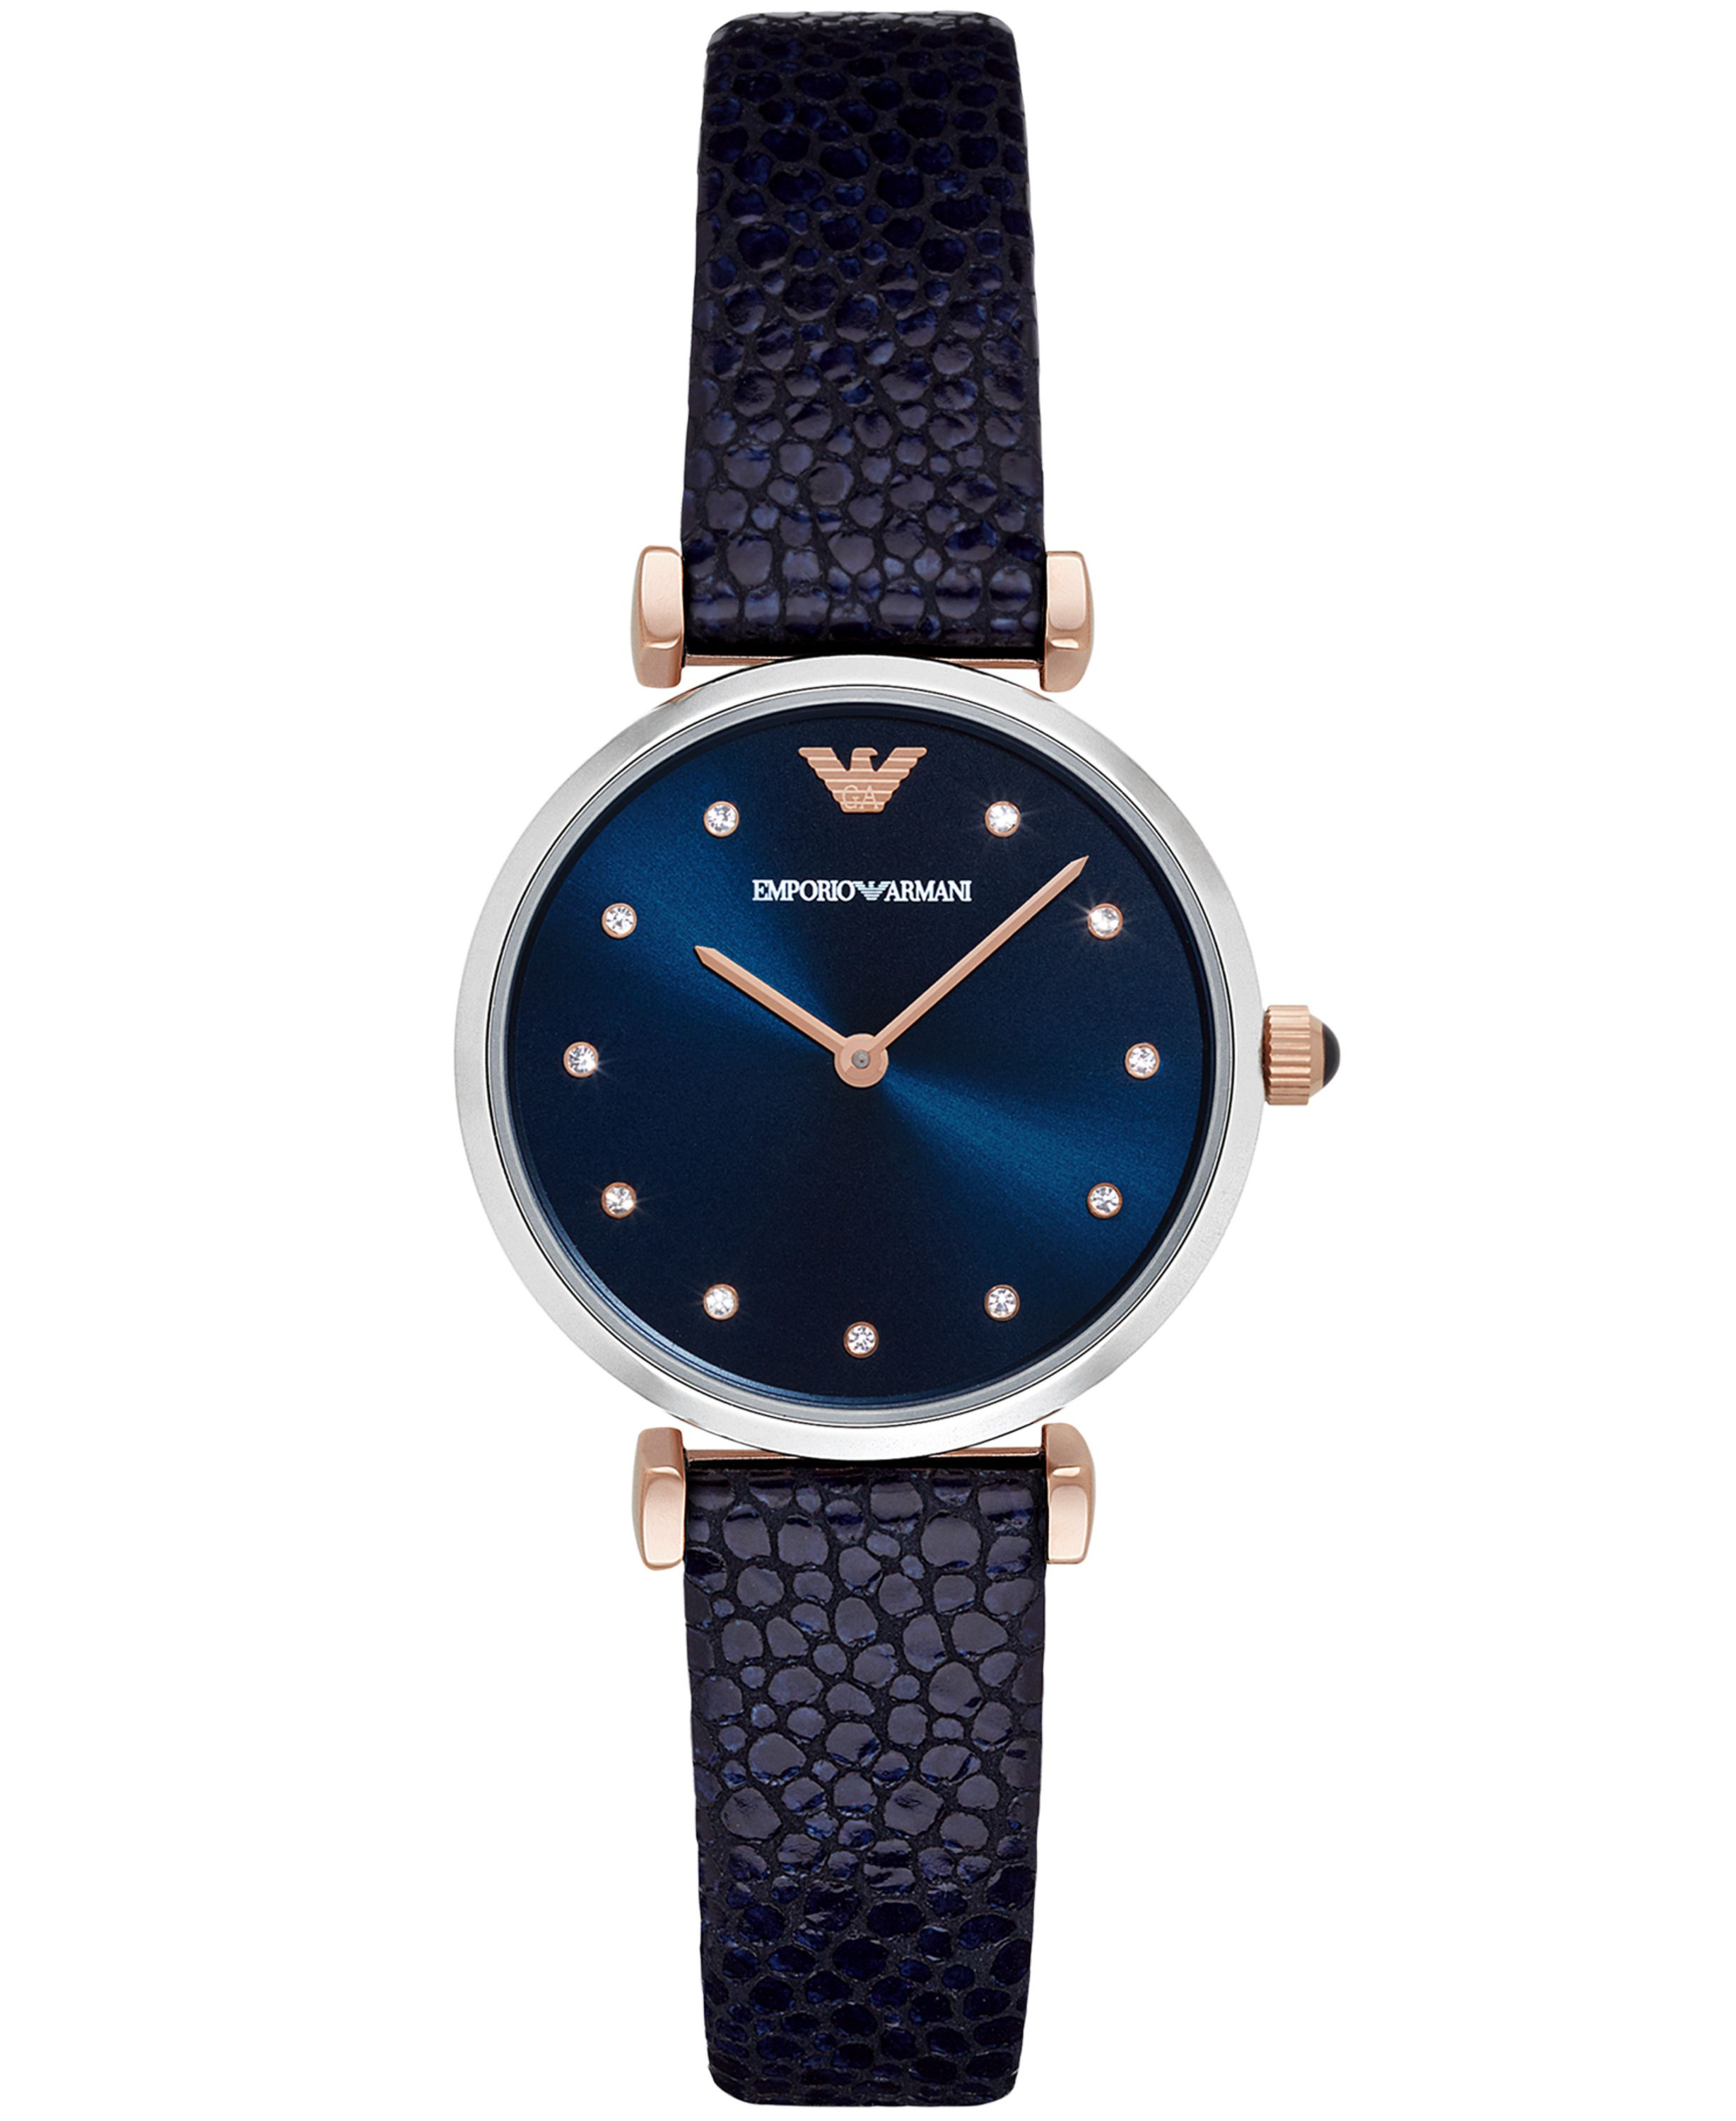 Emporio Armani AR1989 ladies strap watch Navy